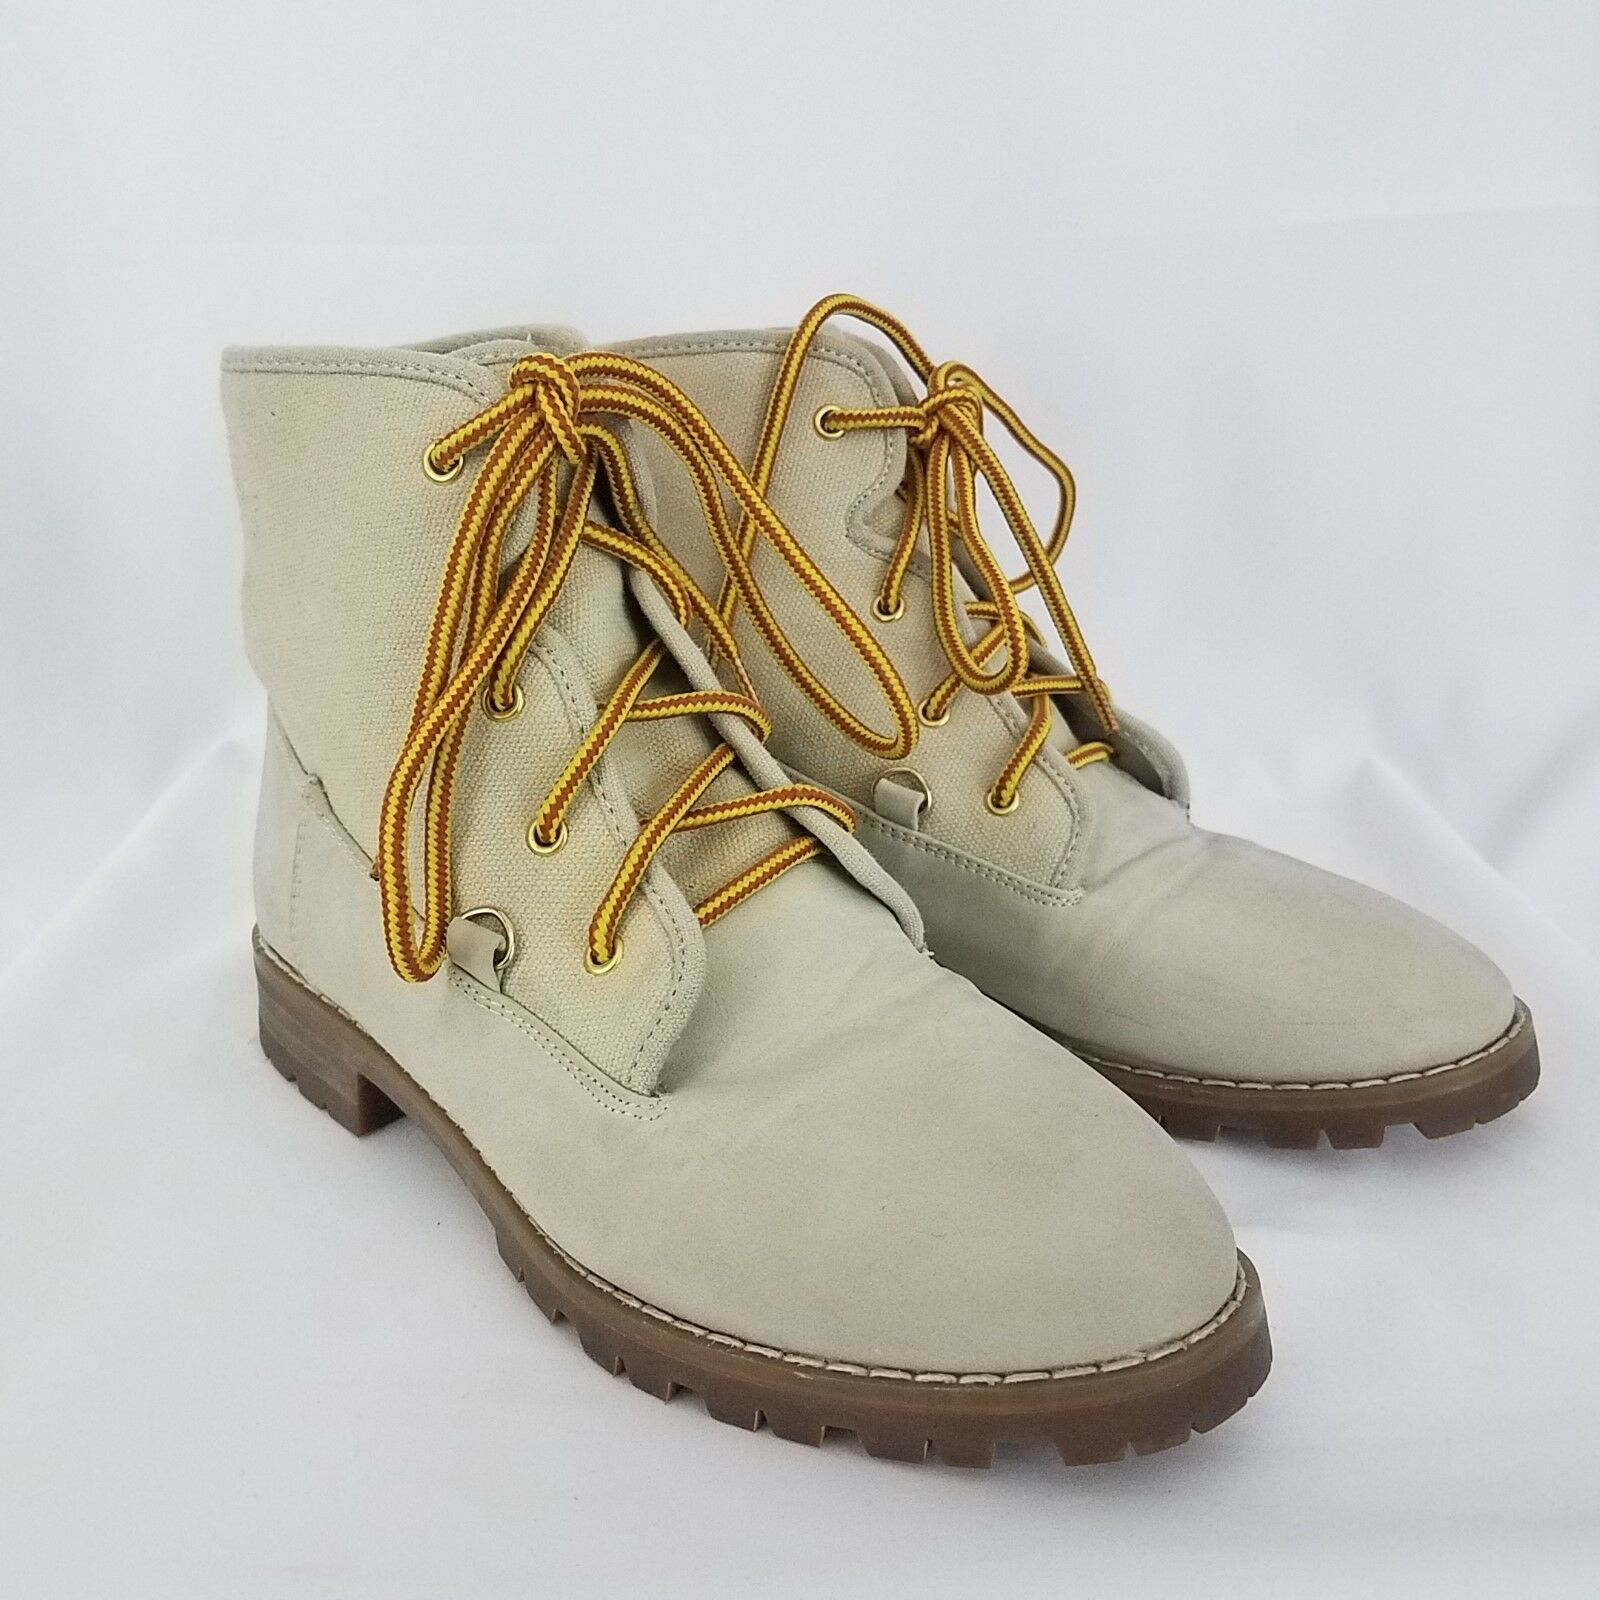 Urban Outfitters BDG Cream Off-white Vegan Ankle Boots Size 6 Women's SH171